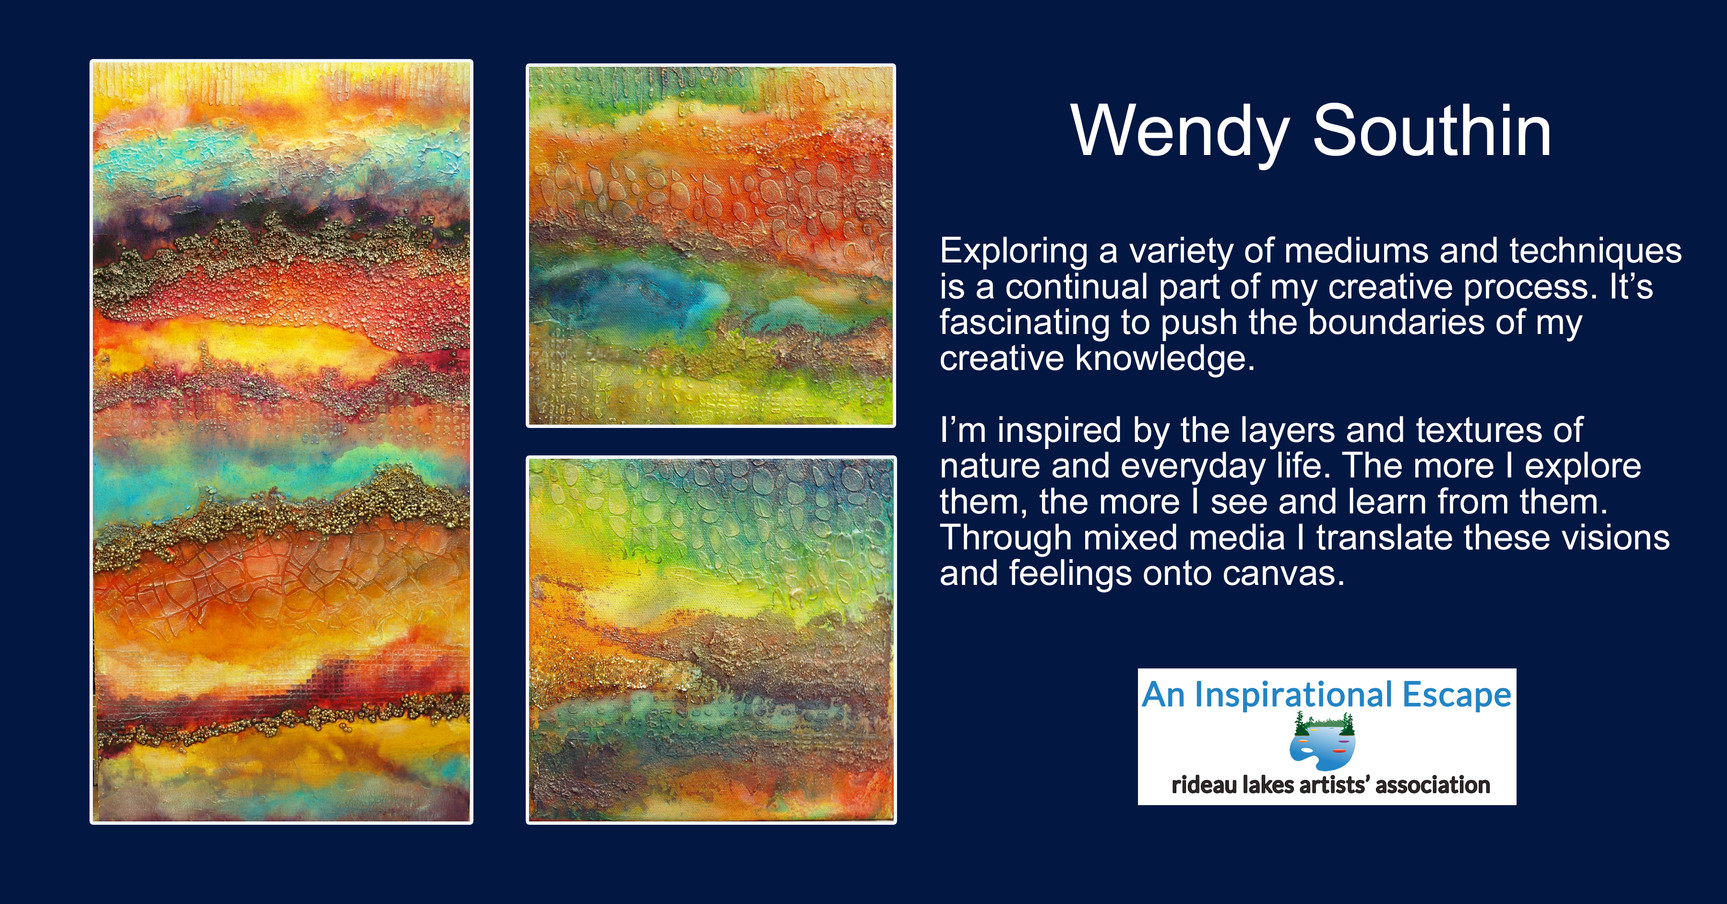 Wendy Southin